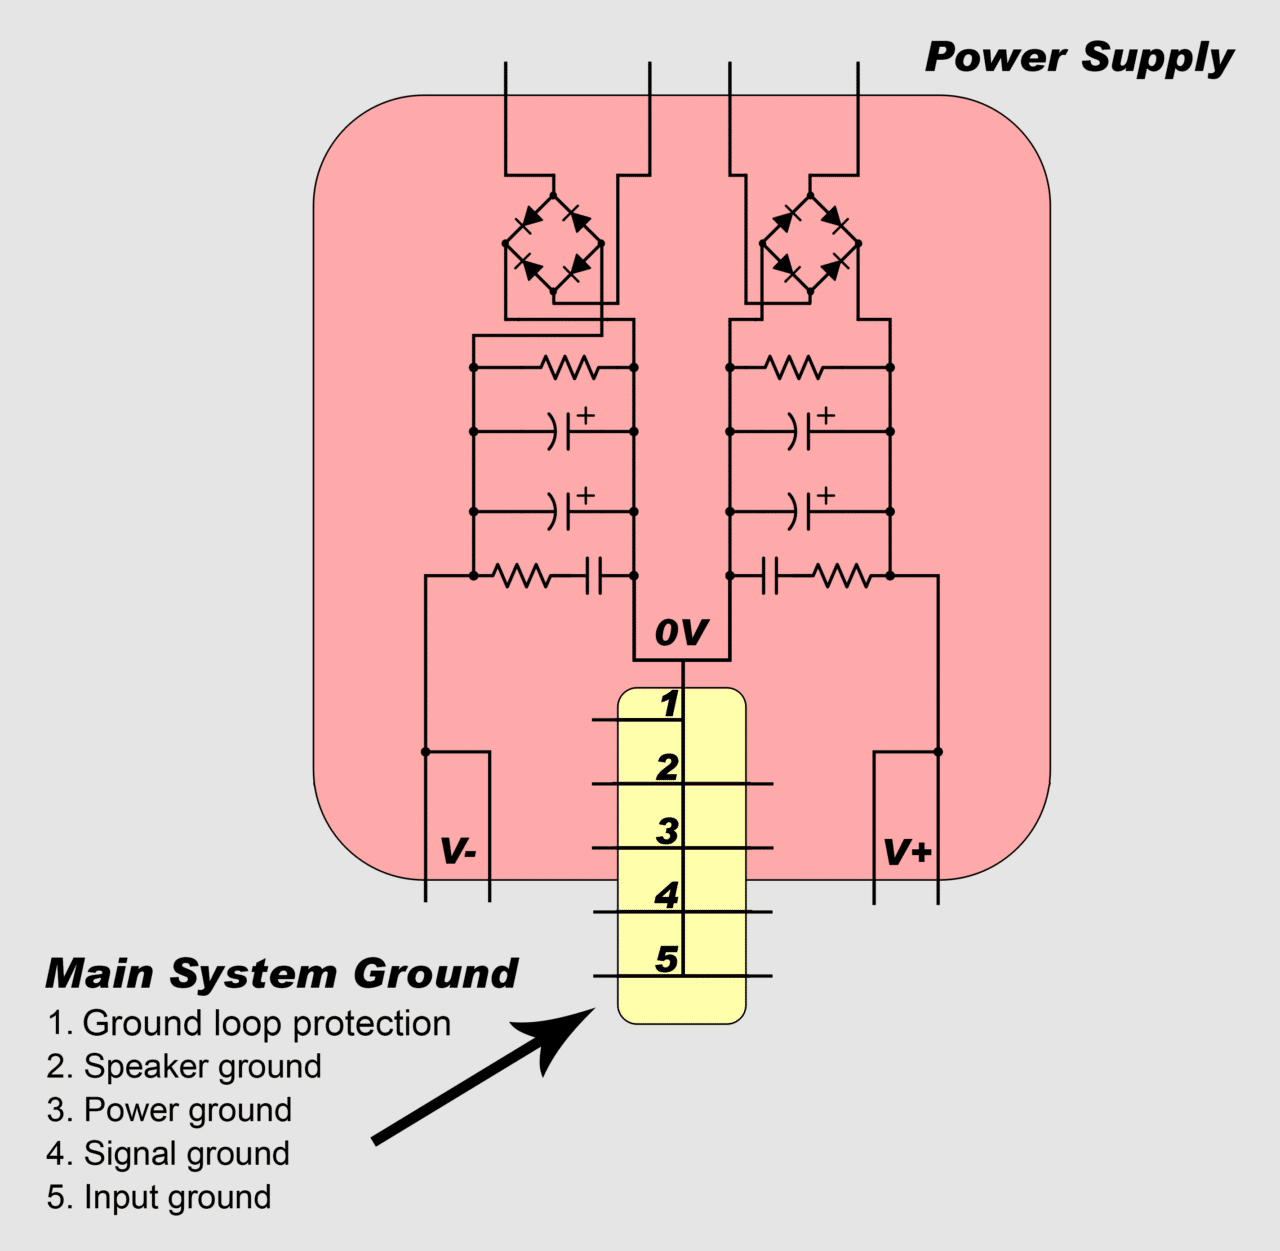 A Complete Guide To Design And Build Hi Fi Lm3886 Amplifier L Filter Circuit Diagram Main System Ground So That Higher Current Grounds Are Closer The Reservoir Capacitors Below Shows How Order Connections